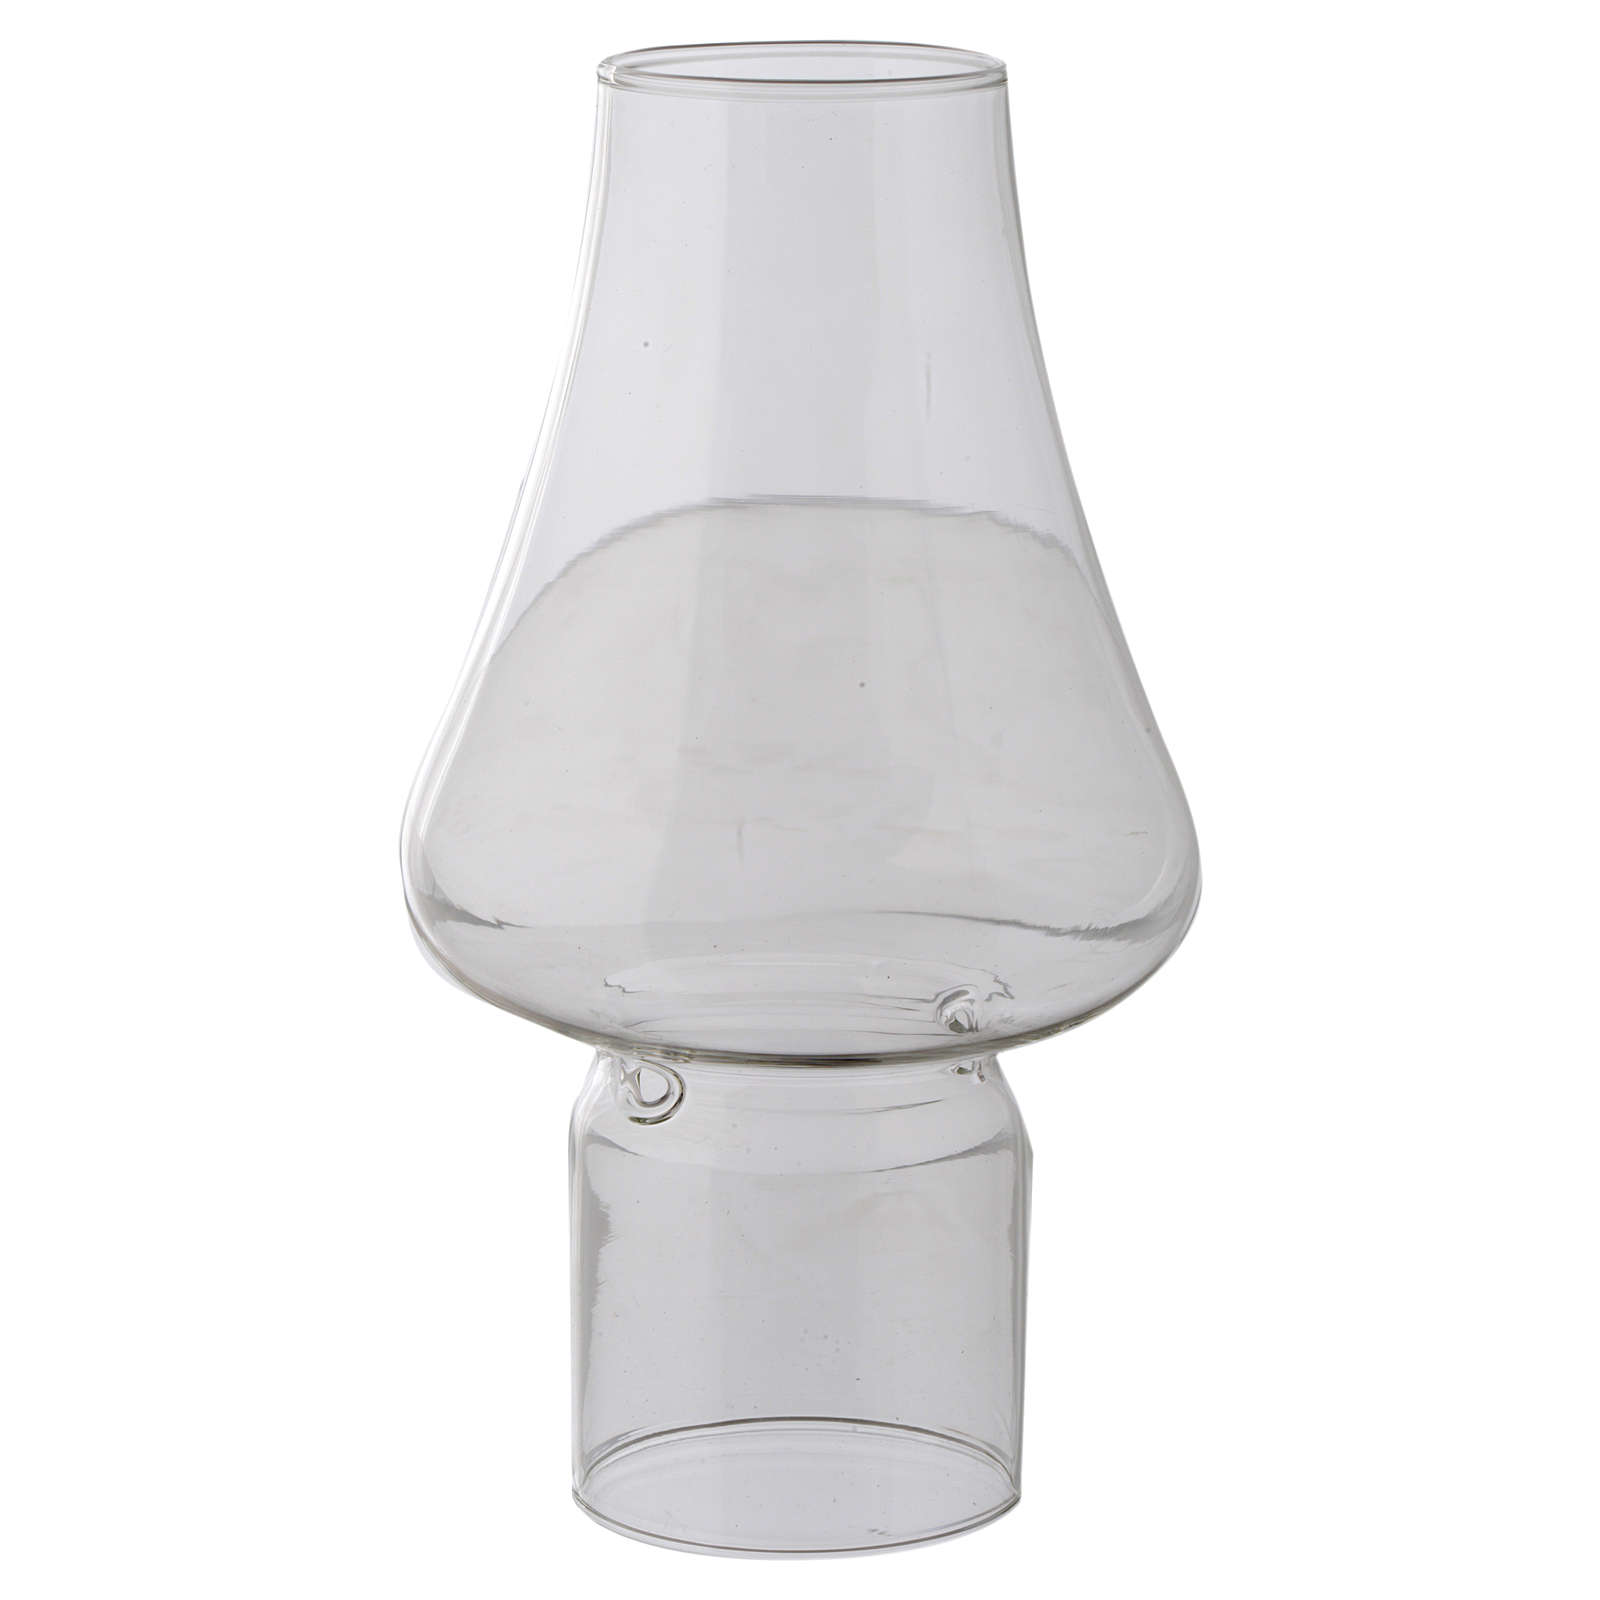 Wind-proof glass for liquid wax candles 3